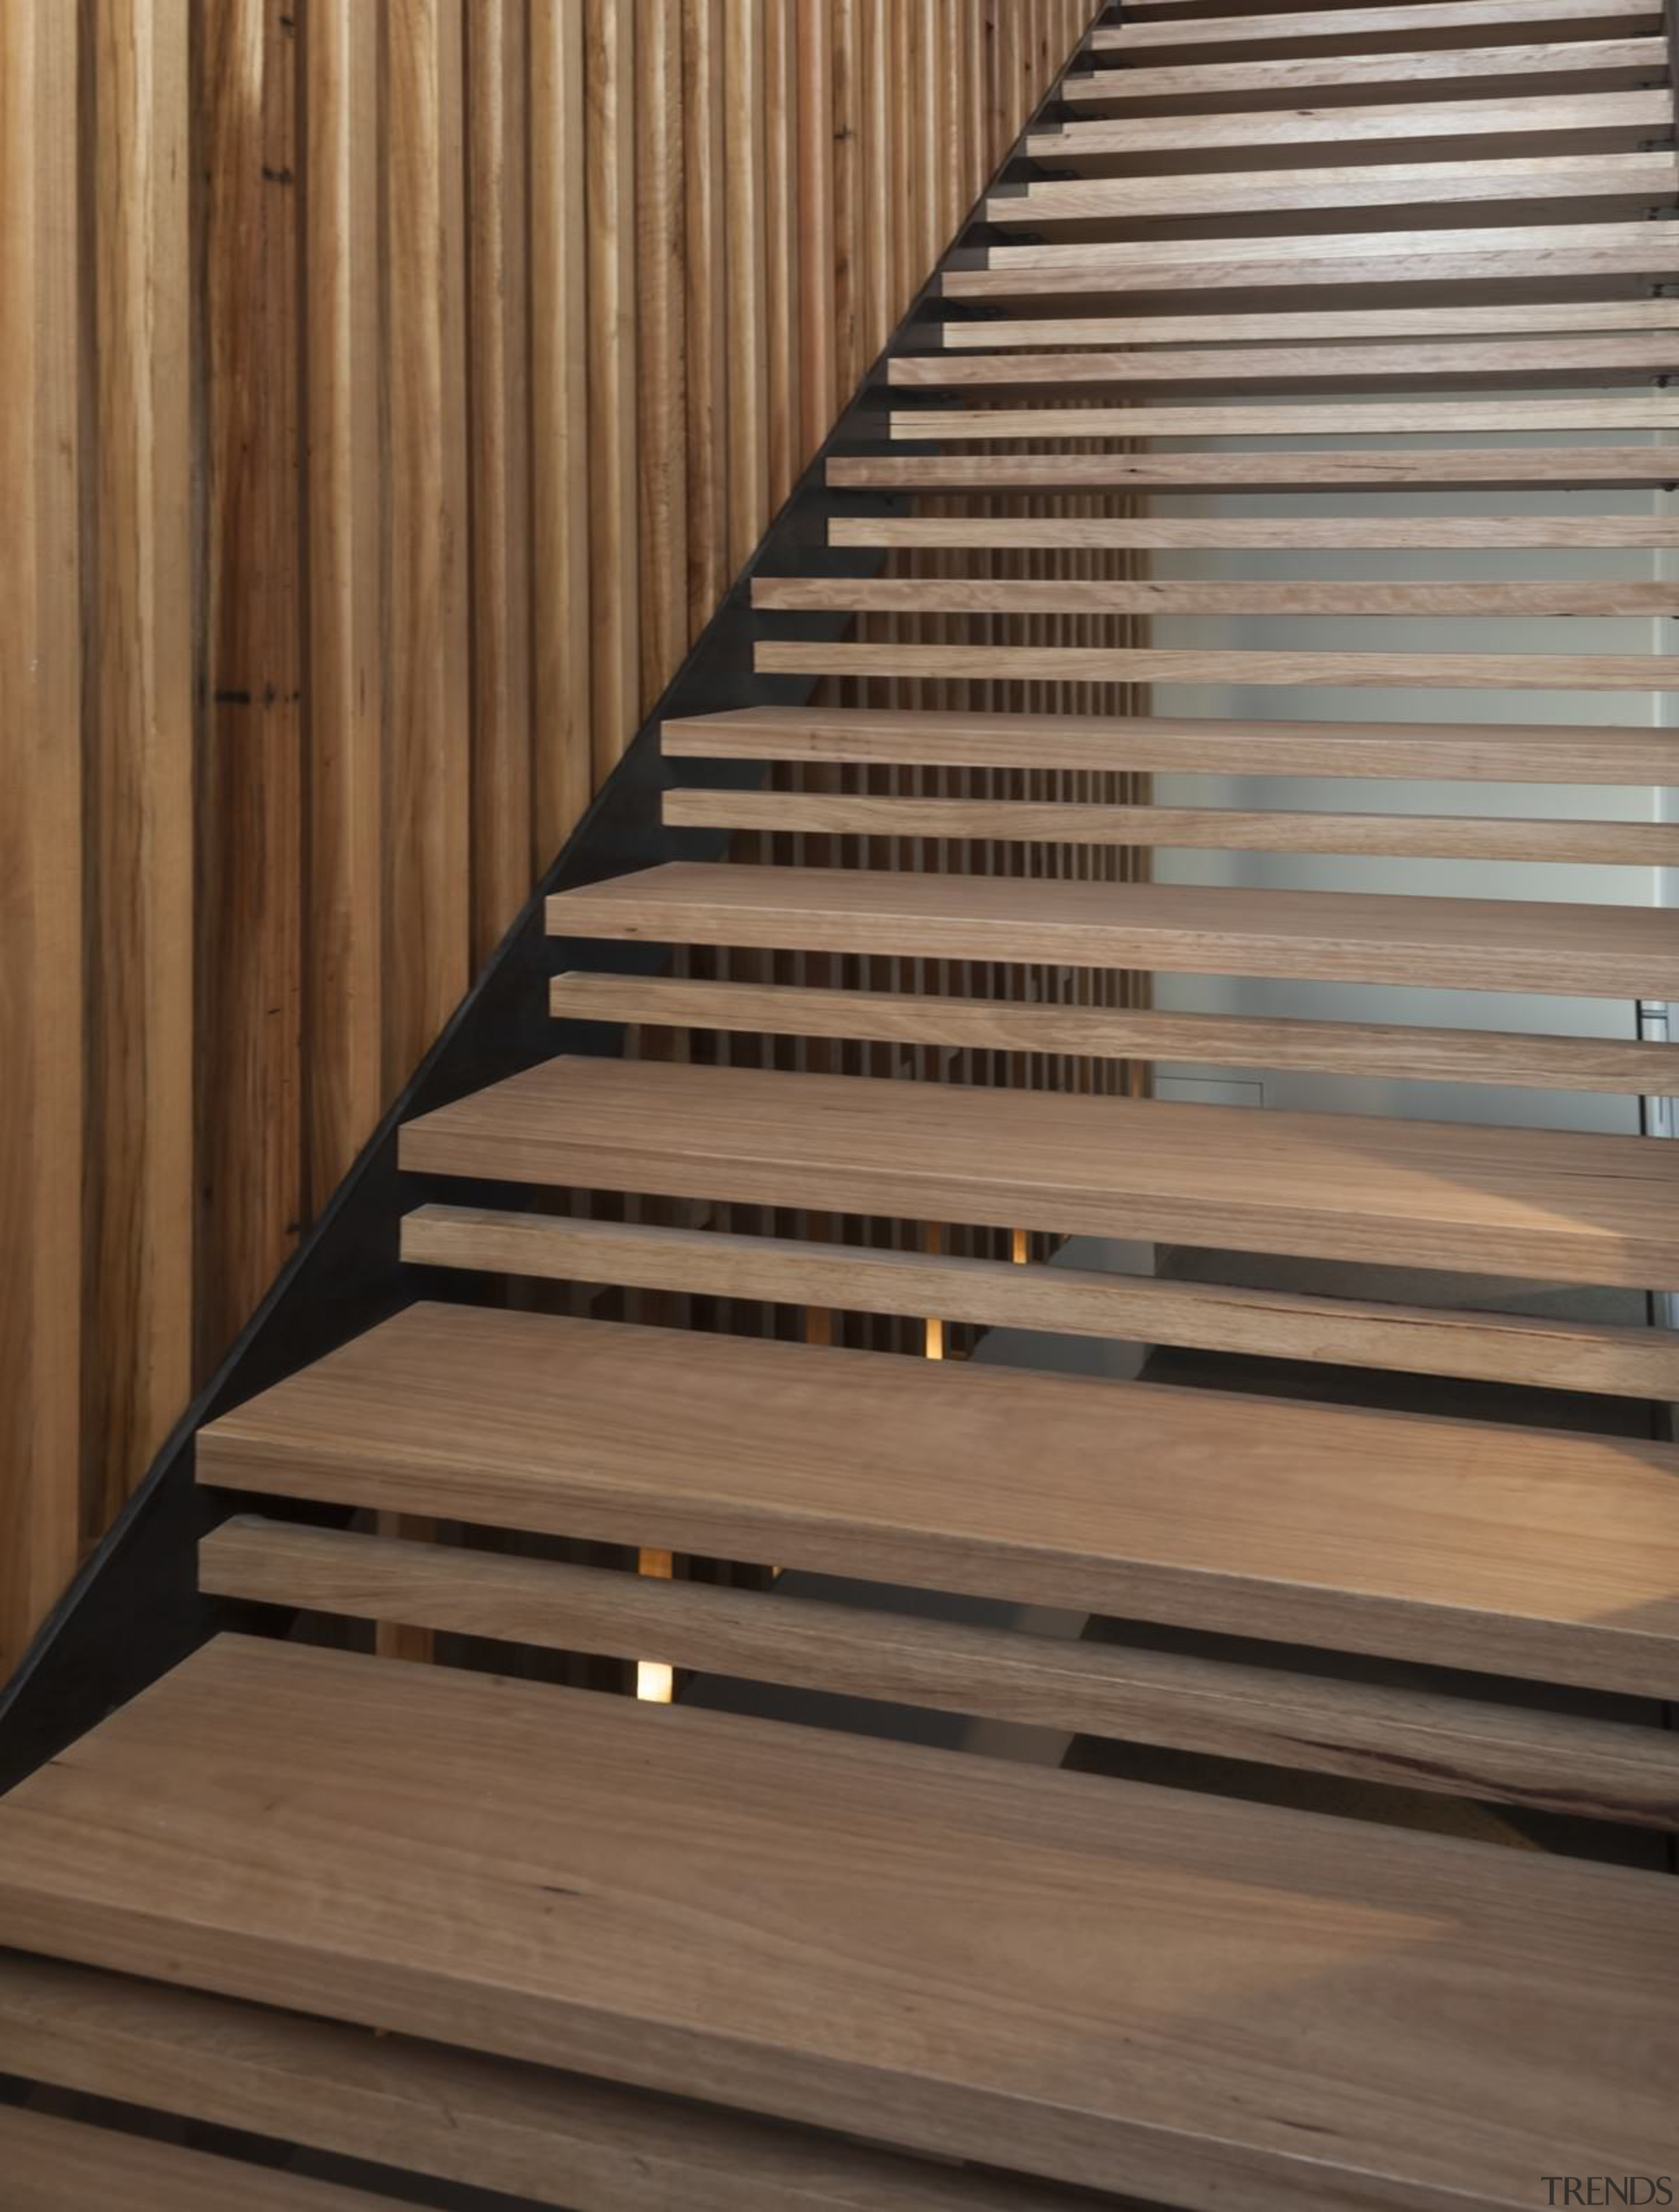 Architect: mcmahon and nerlich architectsPhotography by superk daylighting, floor, handrail, hardwood, laminate flooring, line, lumber, plywood, stairs, wood, wood stain, brown